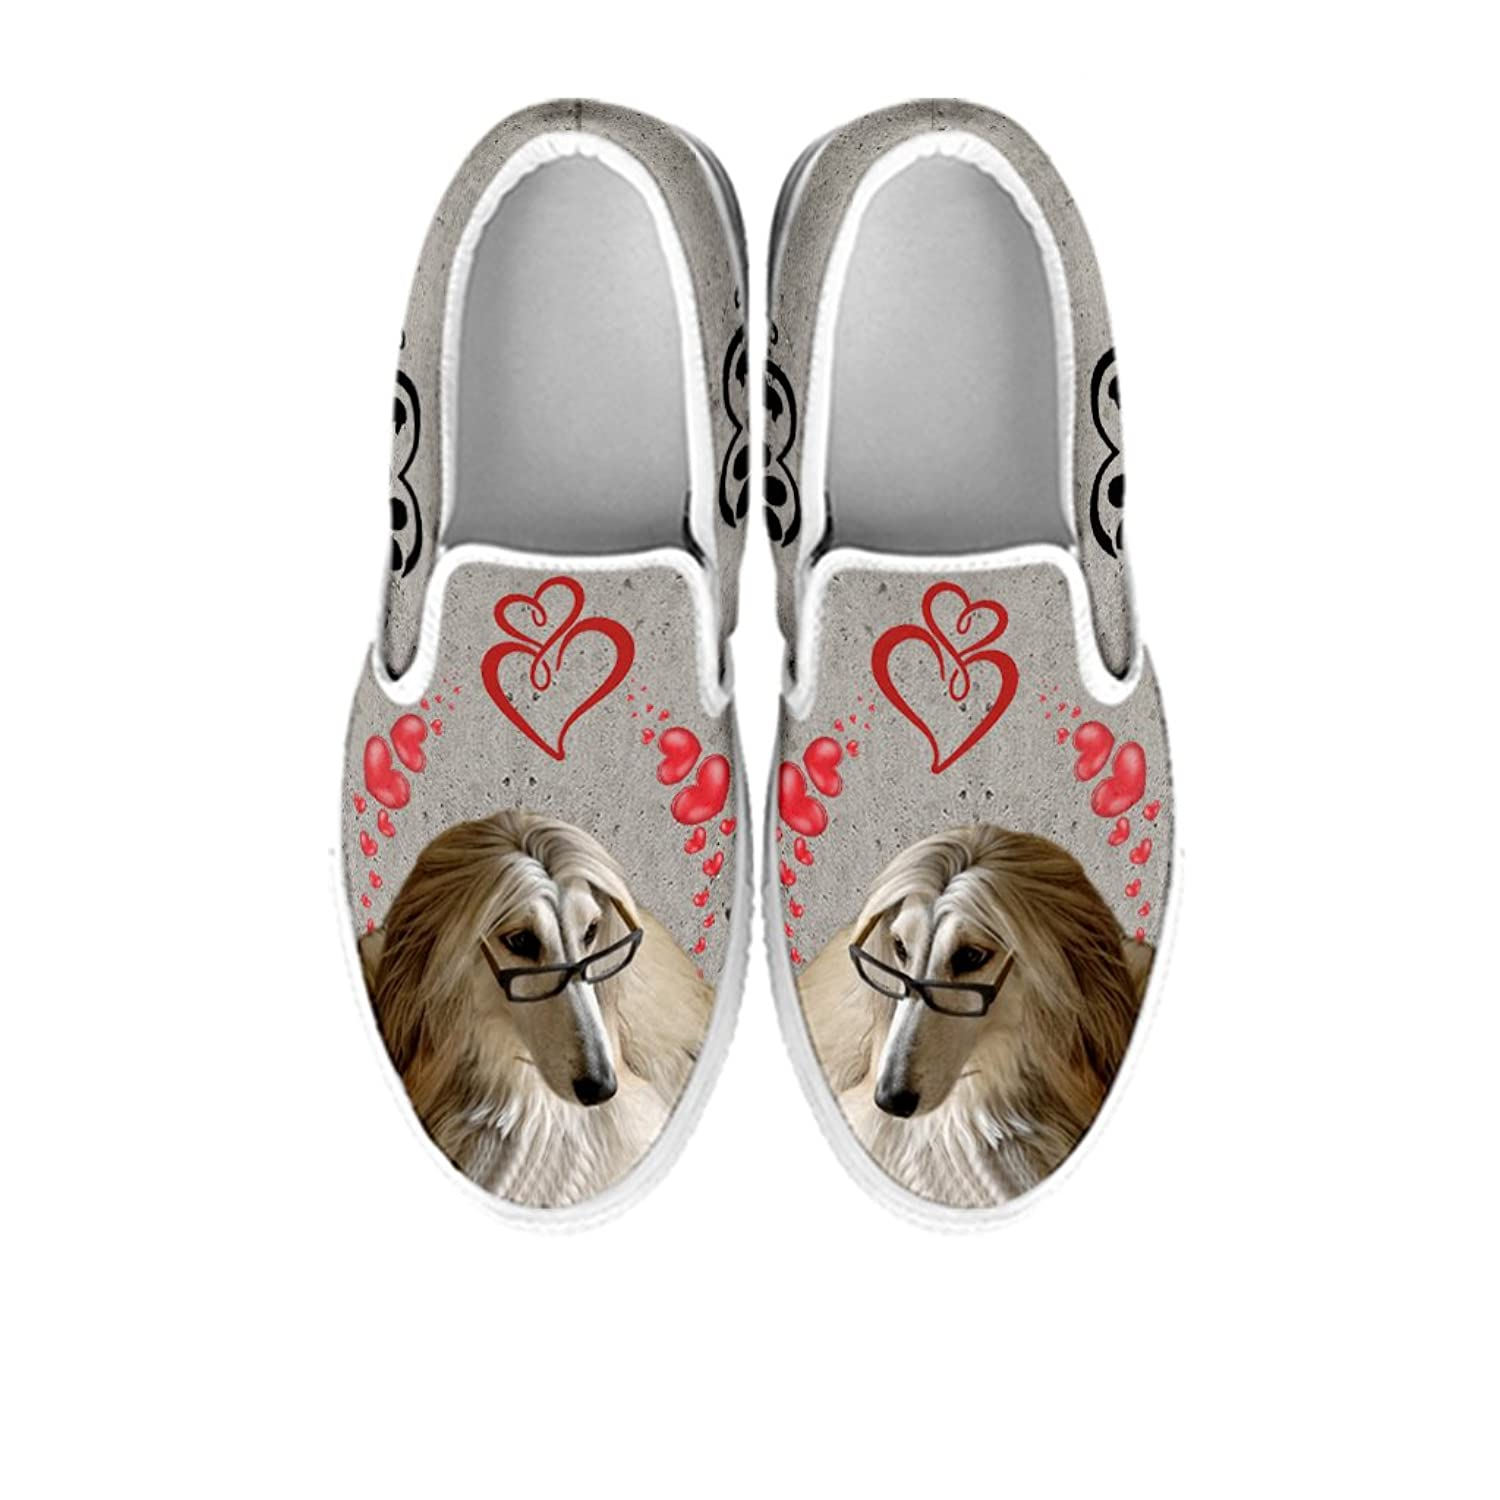 Pawlice Women's Slip Ons- Afghan Hound Dog Print Slip Ons Shoes For Women